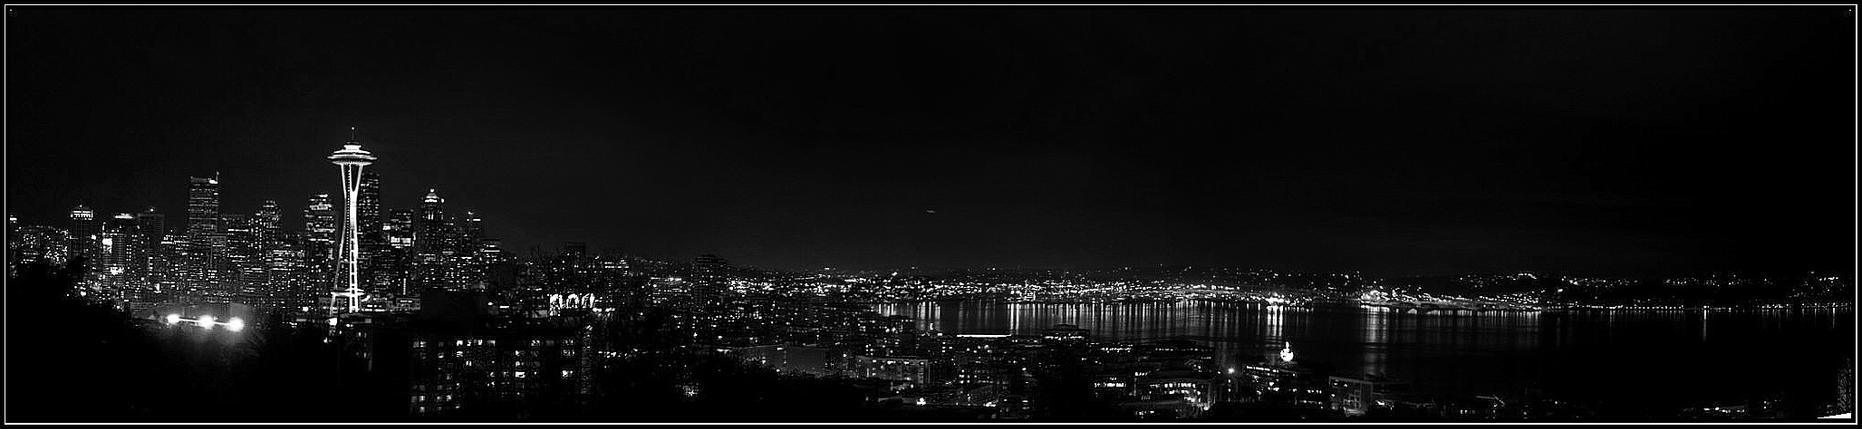 seattle panoramic 1 by photoboy1002001 on deviantart seattle panorama desaturated by ginsane on deviantart 669